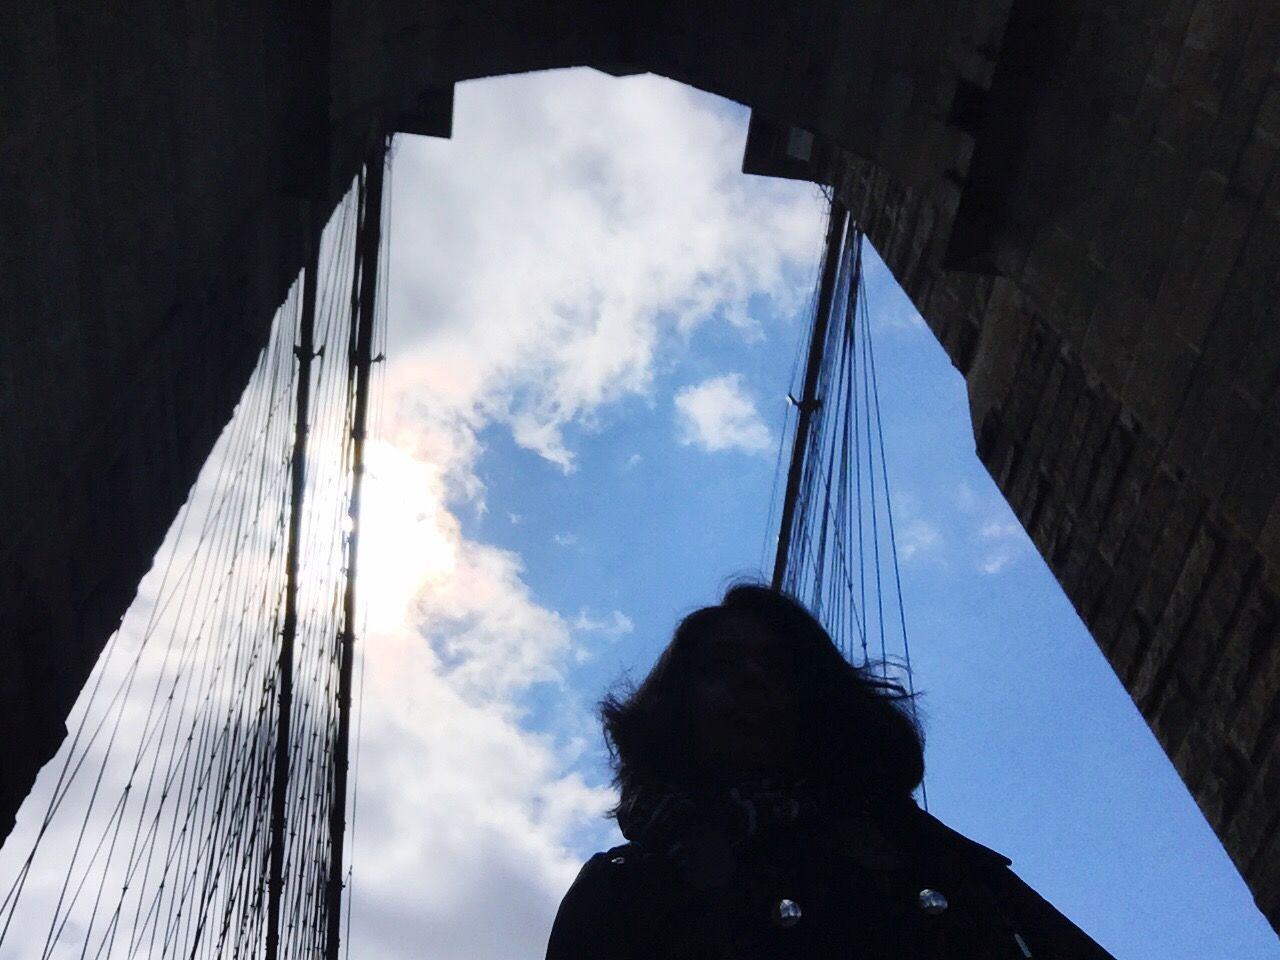 real people, one person, sky, low angle view, cloud - sky, day, outdoors, women, built structure, architecture, people